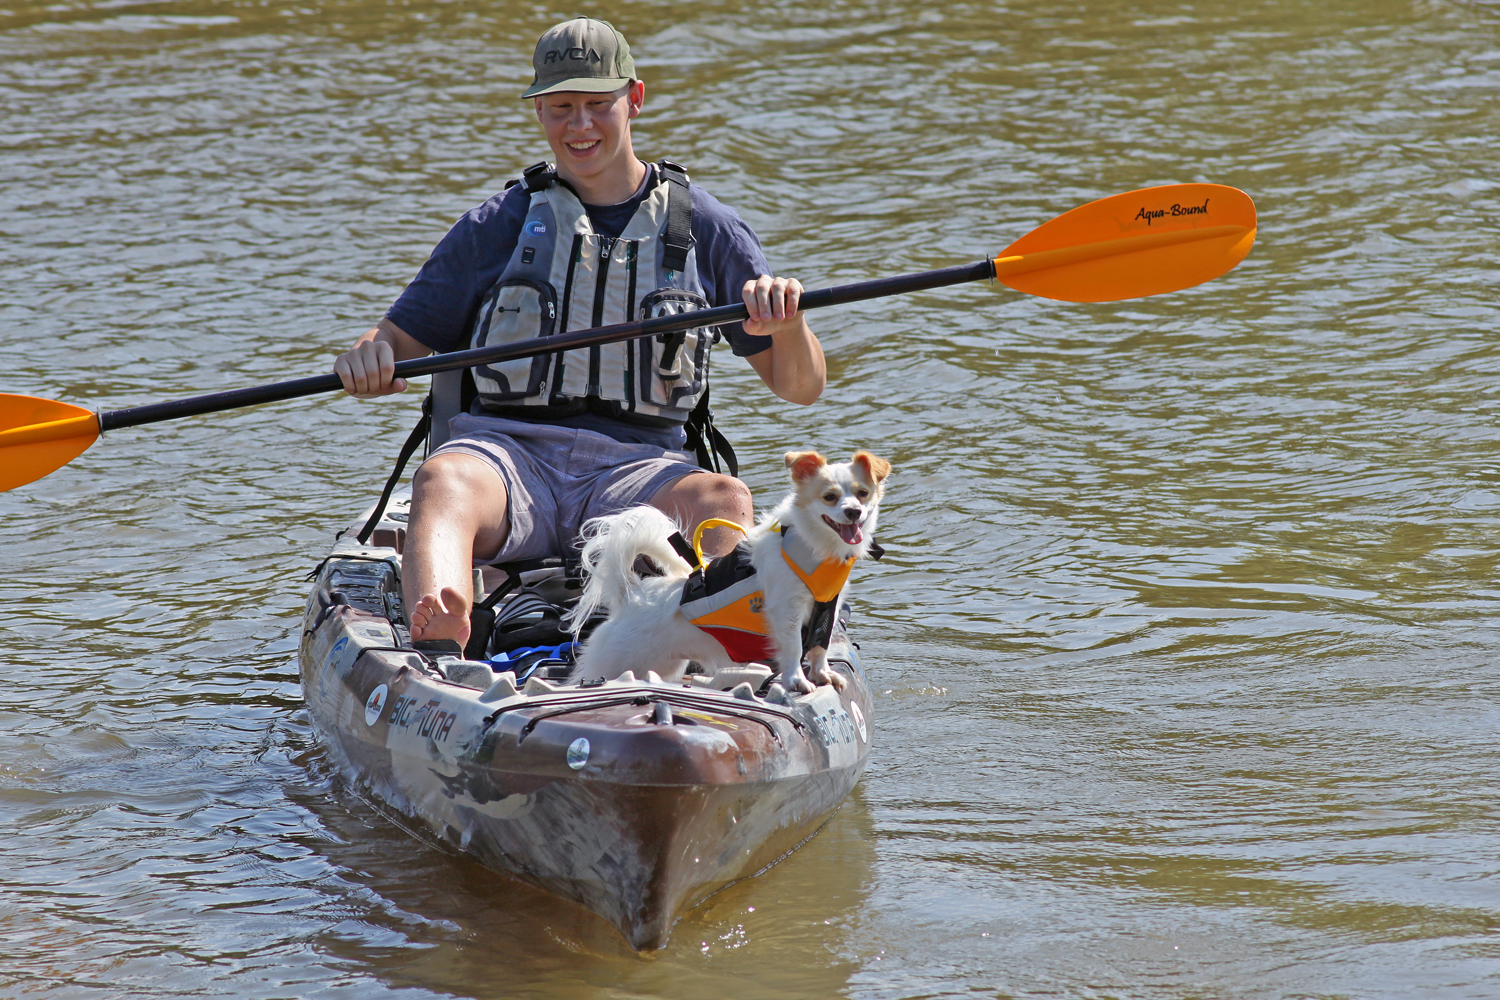 Clint Taylor with his dog Pup in the Jackson Kayak Big Tuna with MTI Adventurewear life jackets